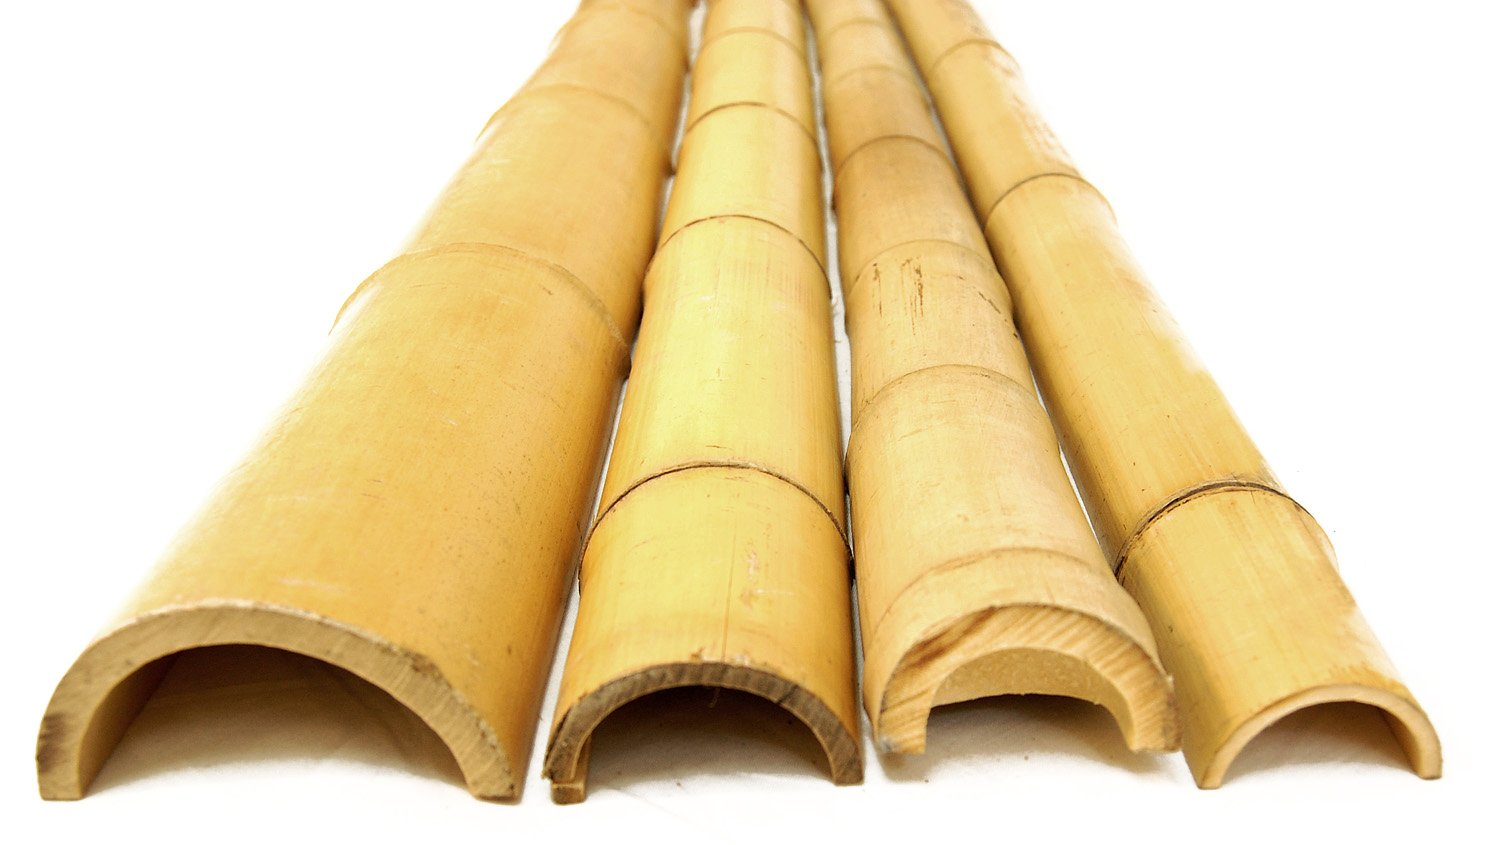 Forever Bamboo 91-N281 Bamboo Poles Half Rounds 2in D x 8in L